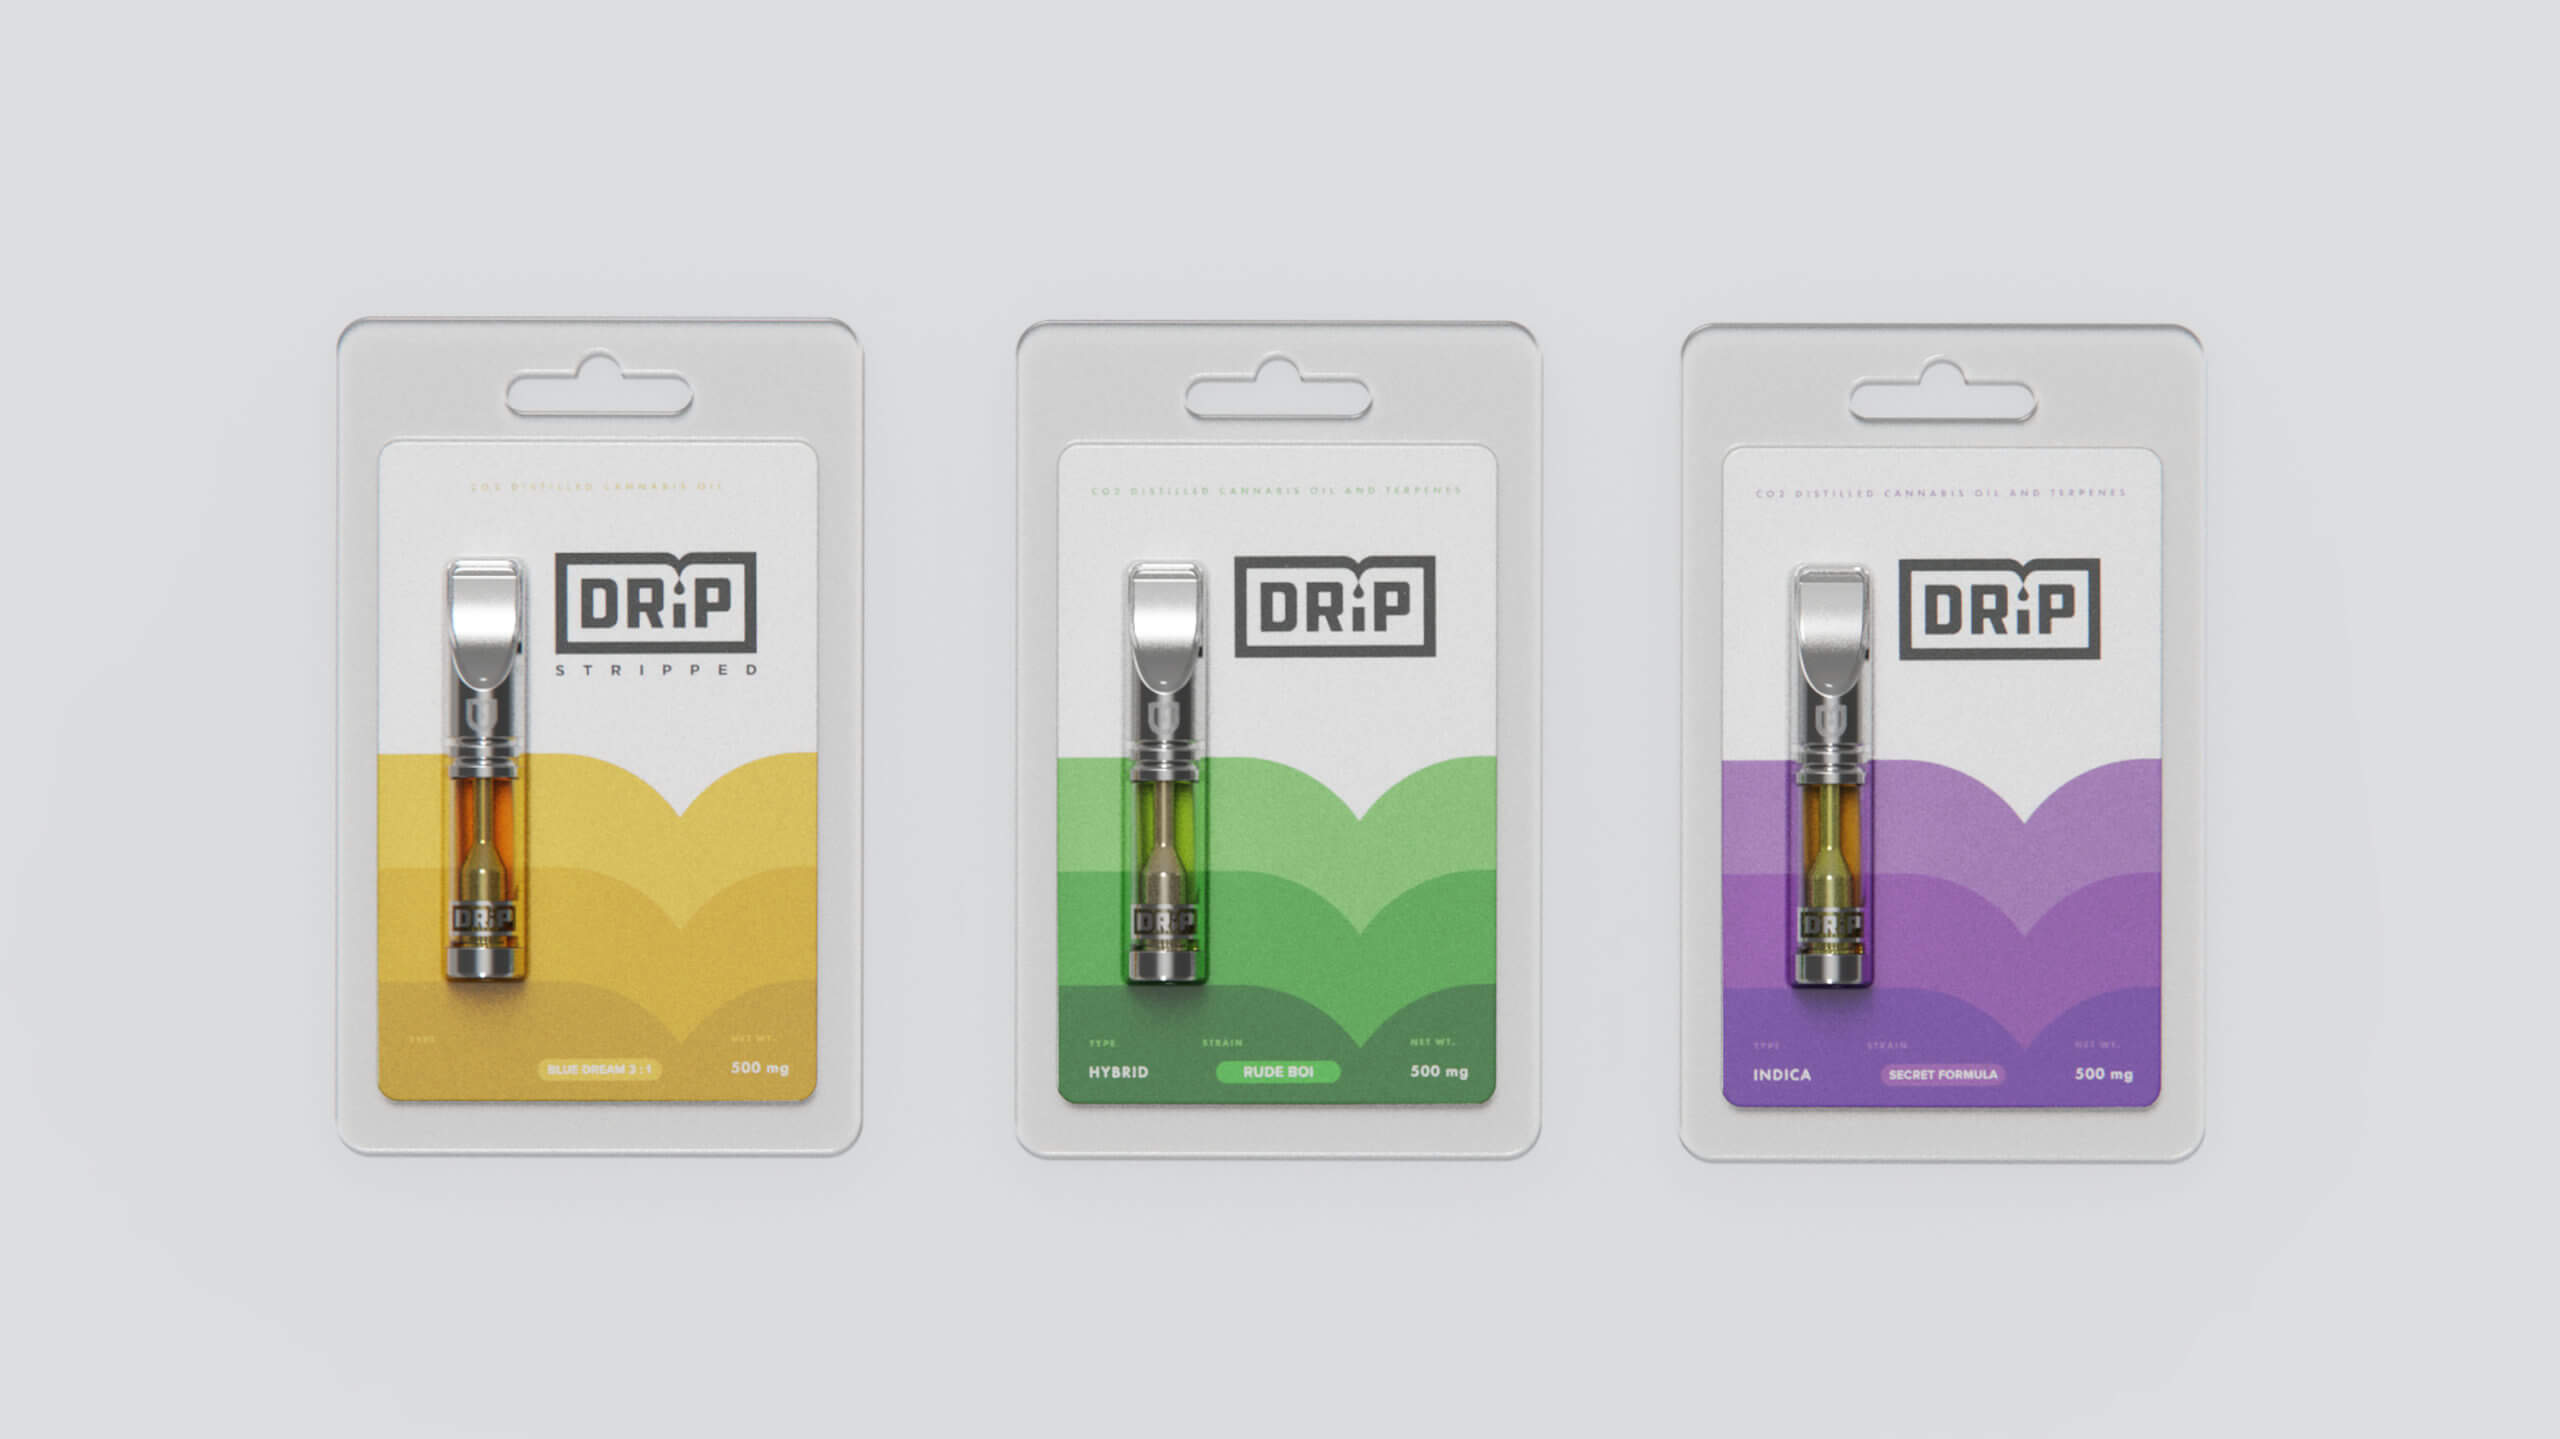 commcan commonwealth cannabis company cannabis co2 oil cartridge packaging